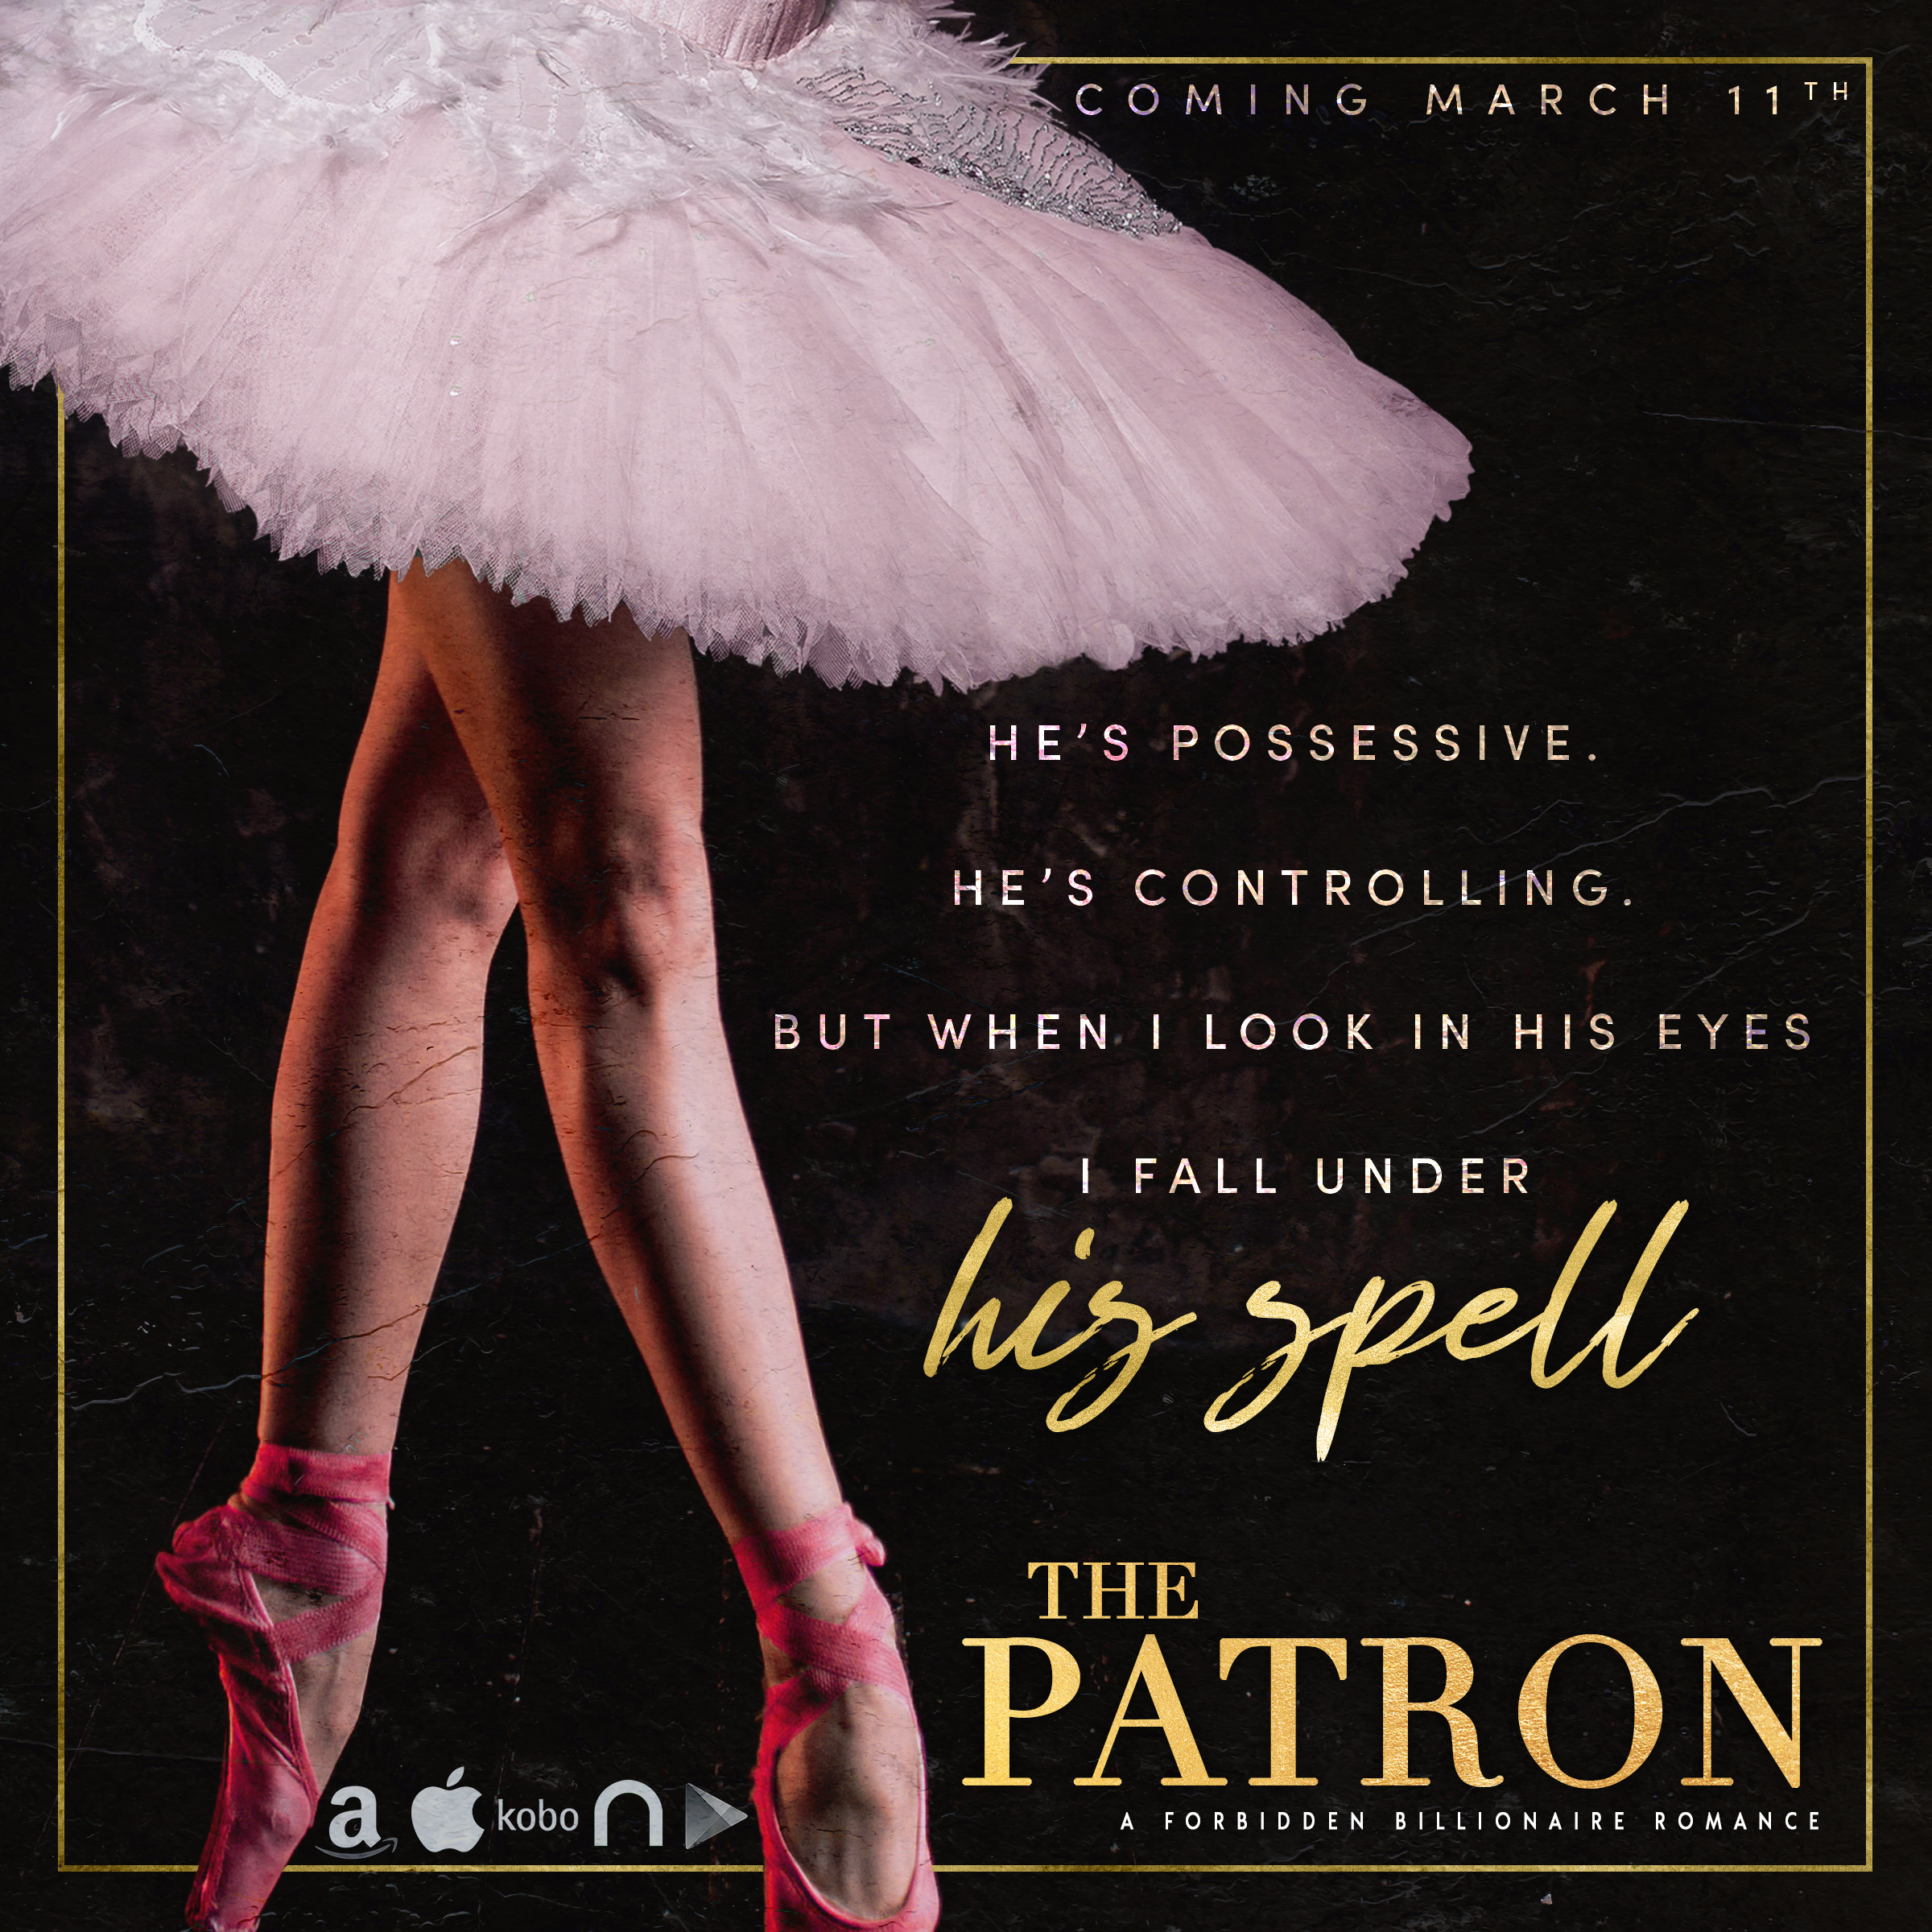 New Teaser and Except for The Patron by Vivian Wood